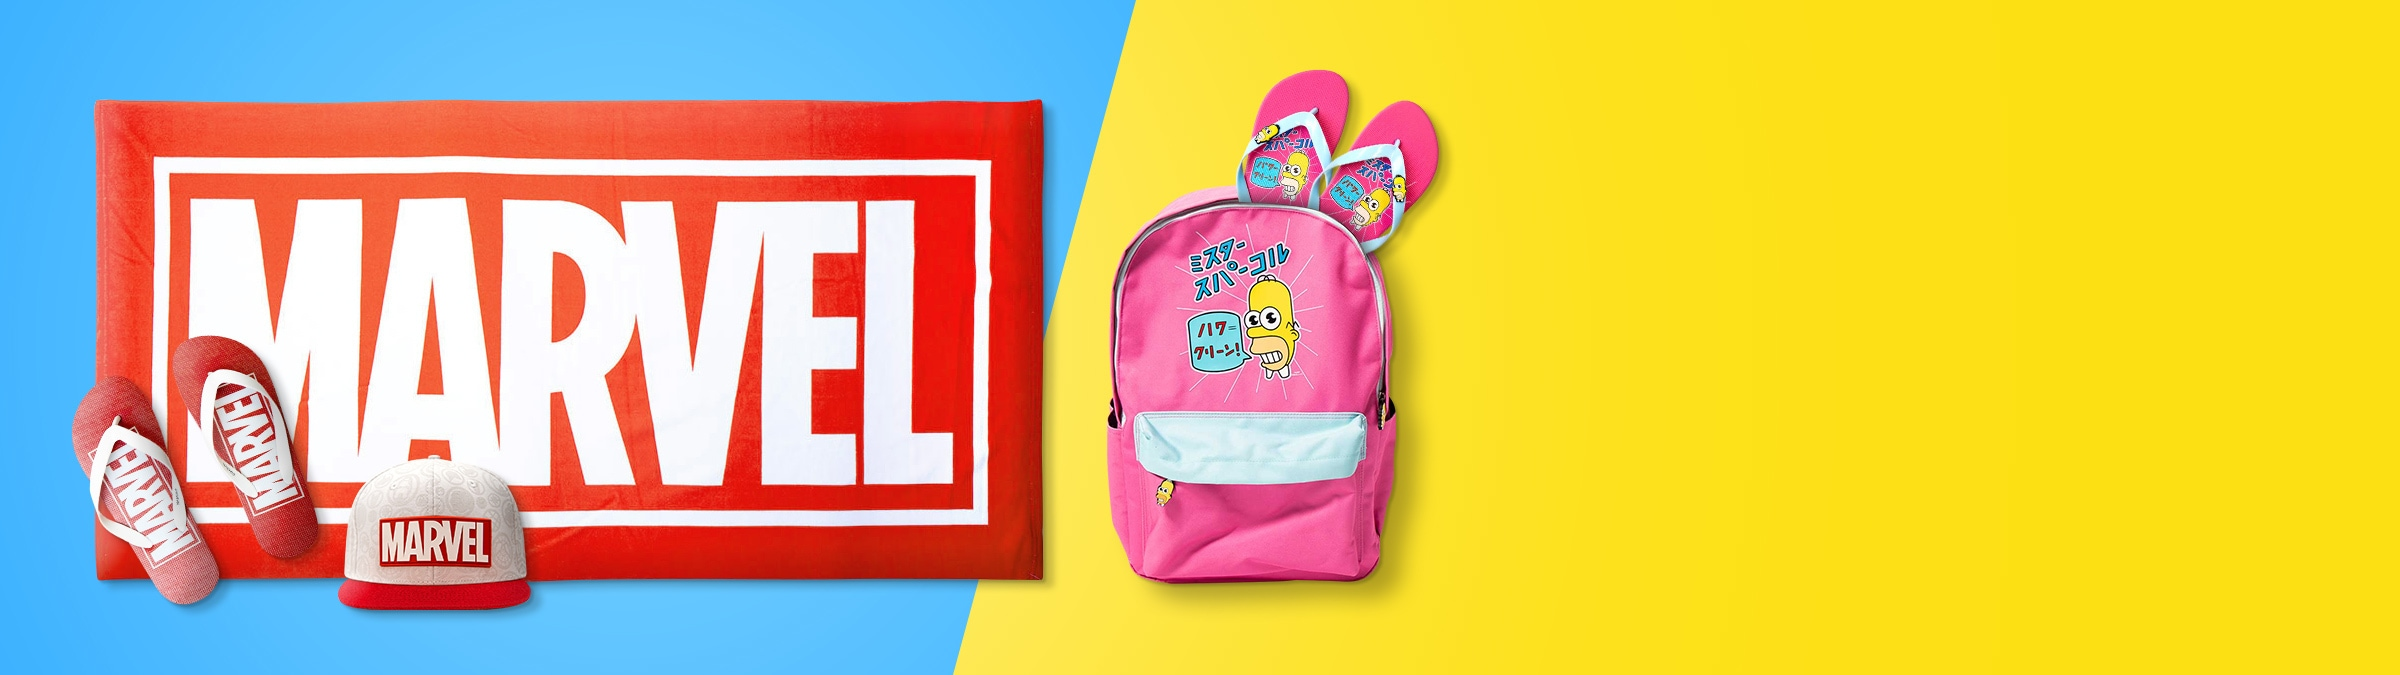 Shop - Marvel - The Simpsons - Summer Favourites - Zing